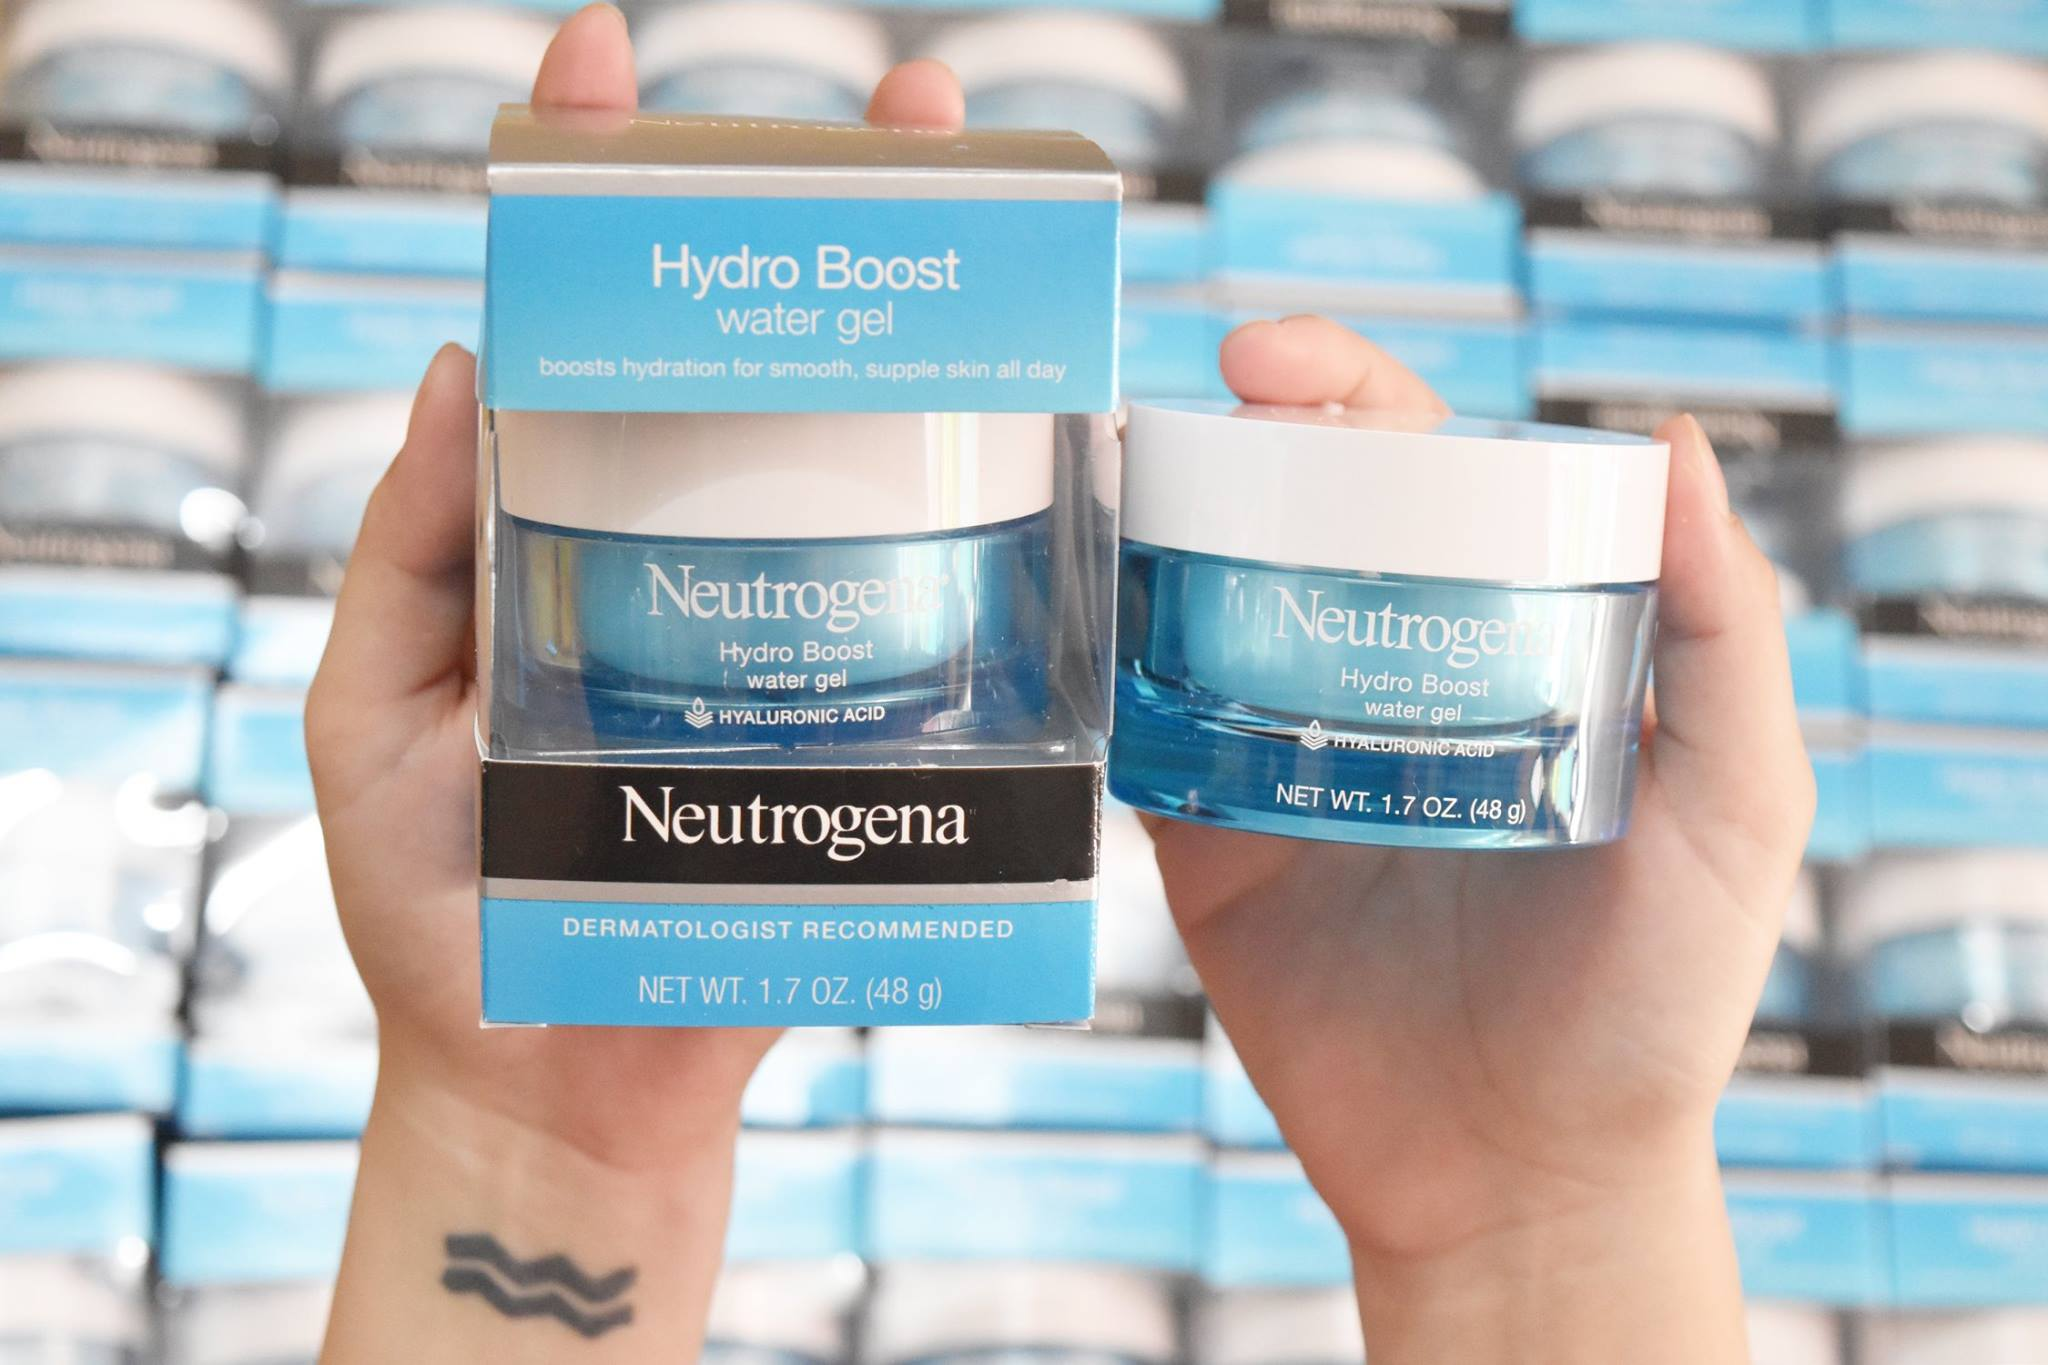 gel-duong-am-chong-nang-neutrogena-hydro-boost-water-gel-with-spf-15